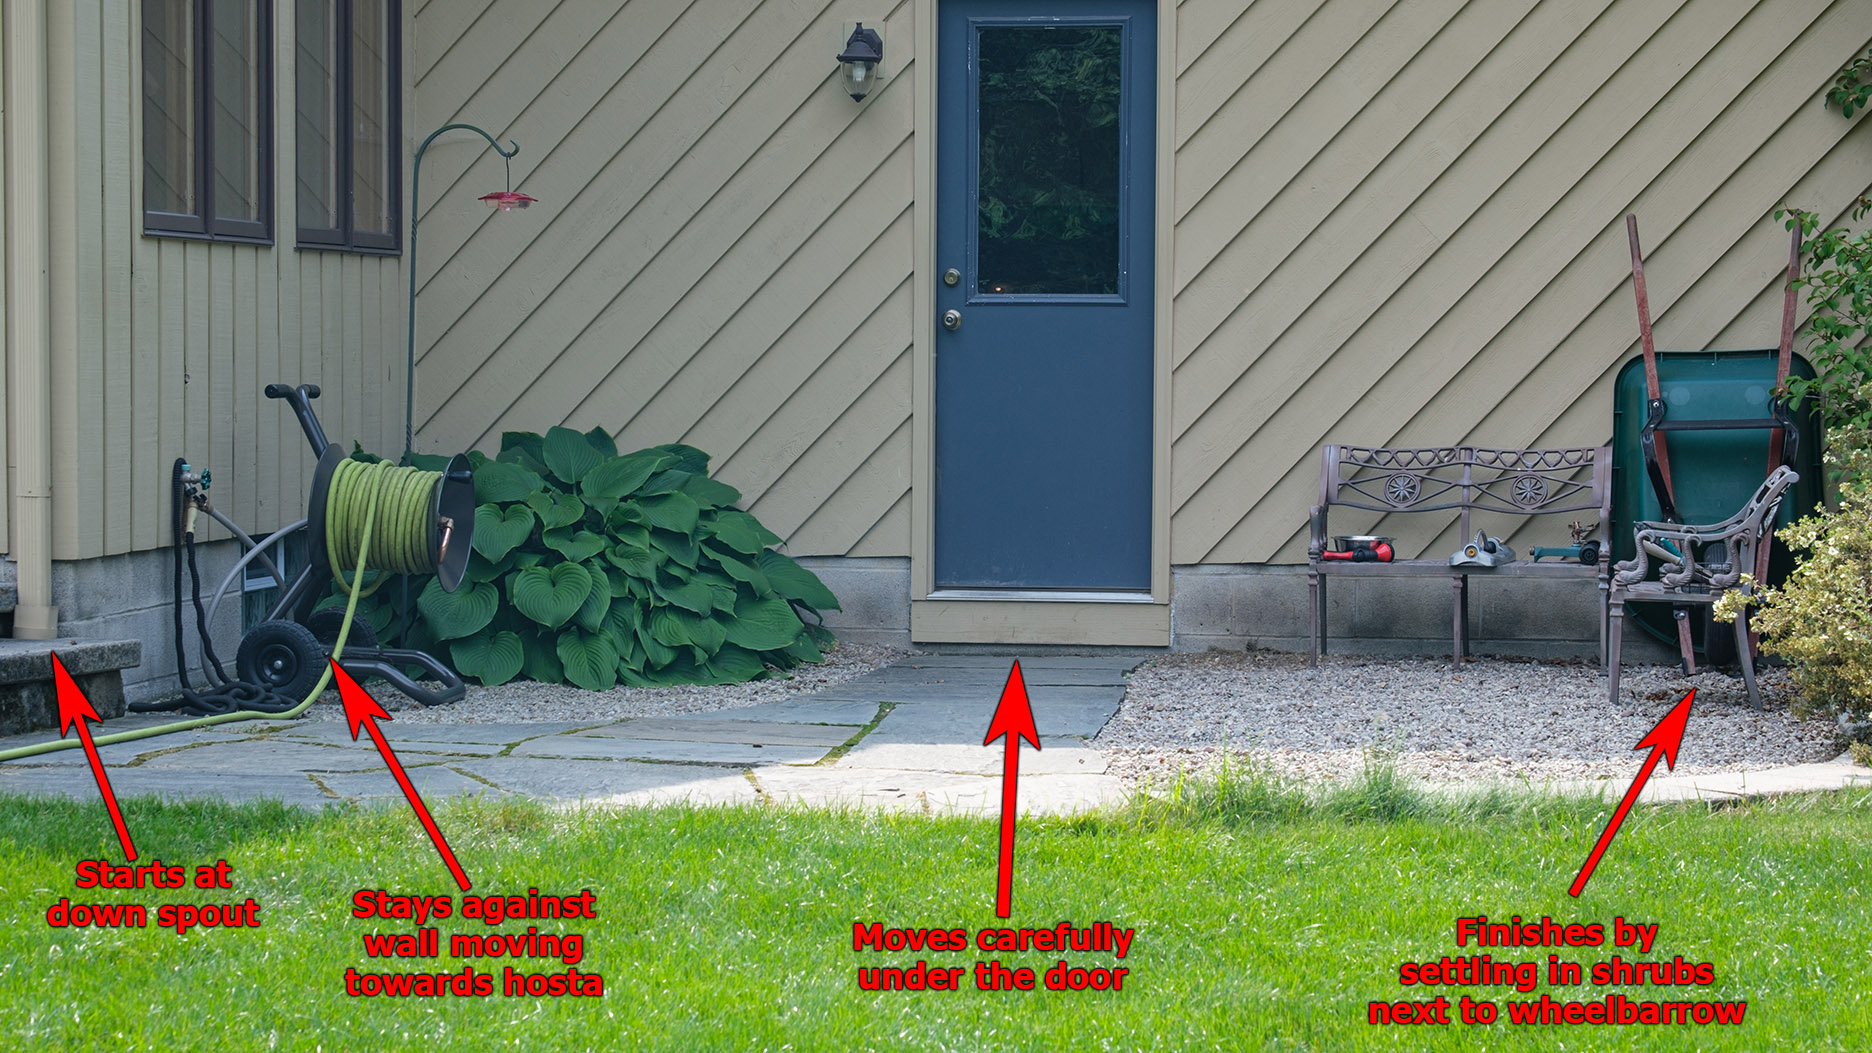 7271 - Patio where snake moves from drain - annotated